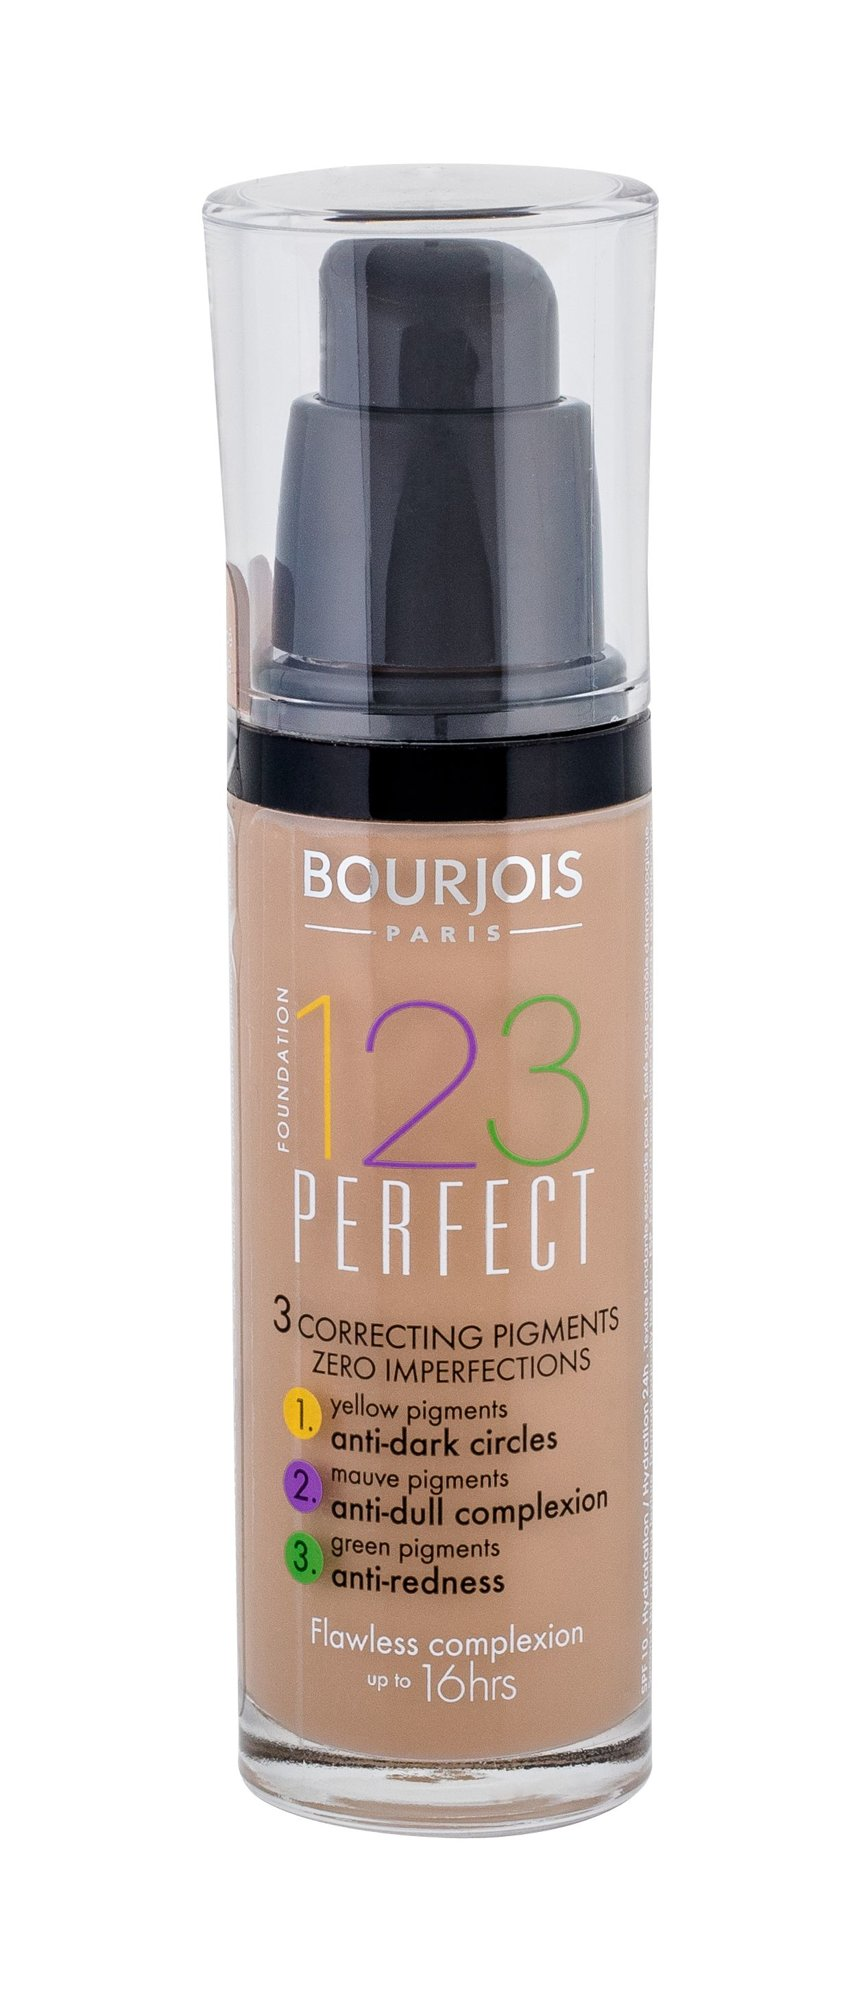 BOURJOIS Paris 123 Perfect Cosmetic 30ml 55 Dark Beige